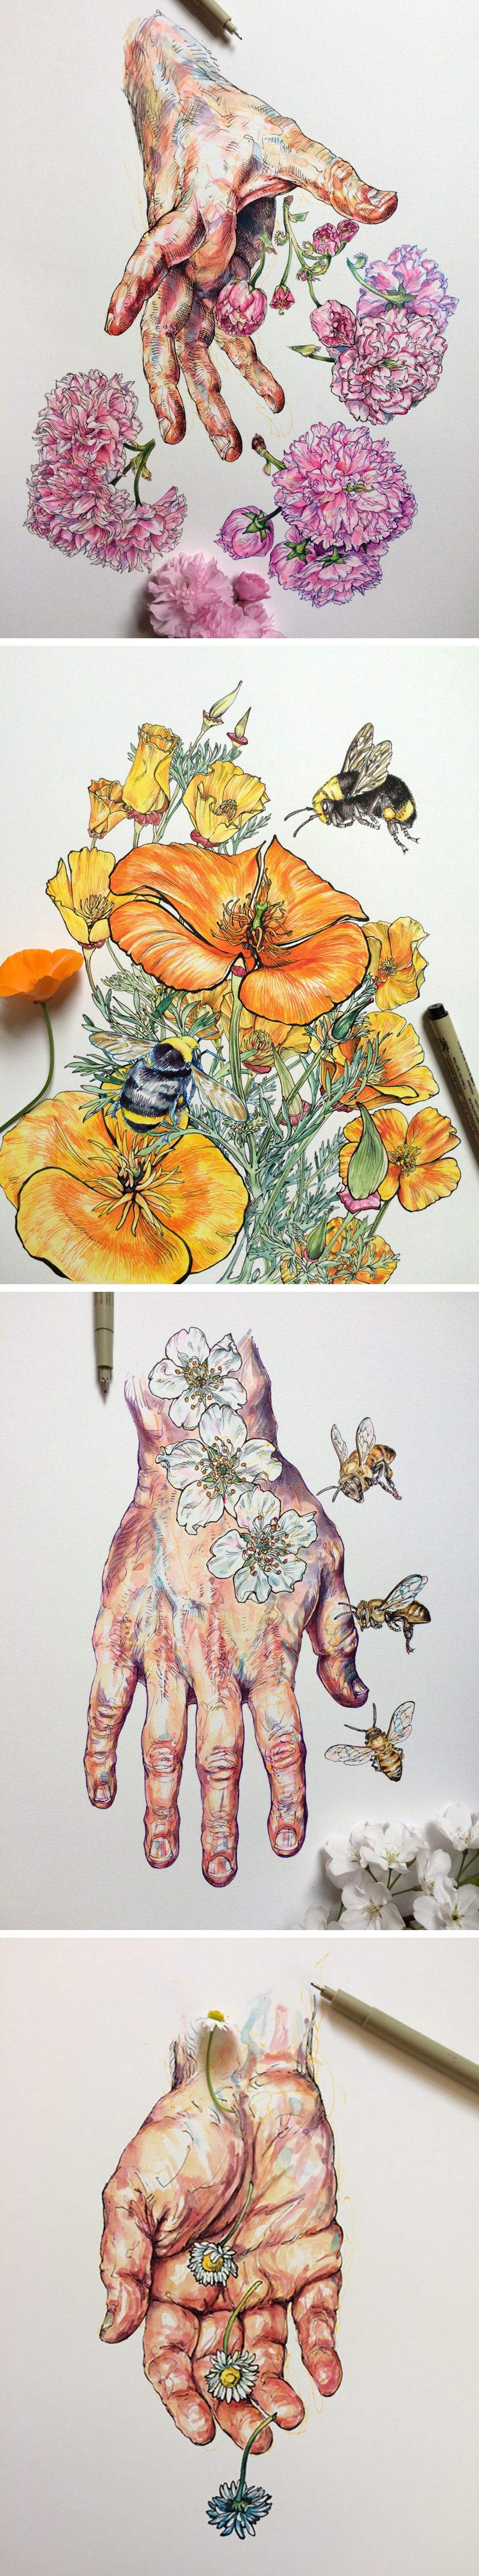 Colorful Studies of an Artist's Hands Layered With Flowers and Bees